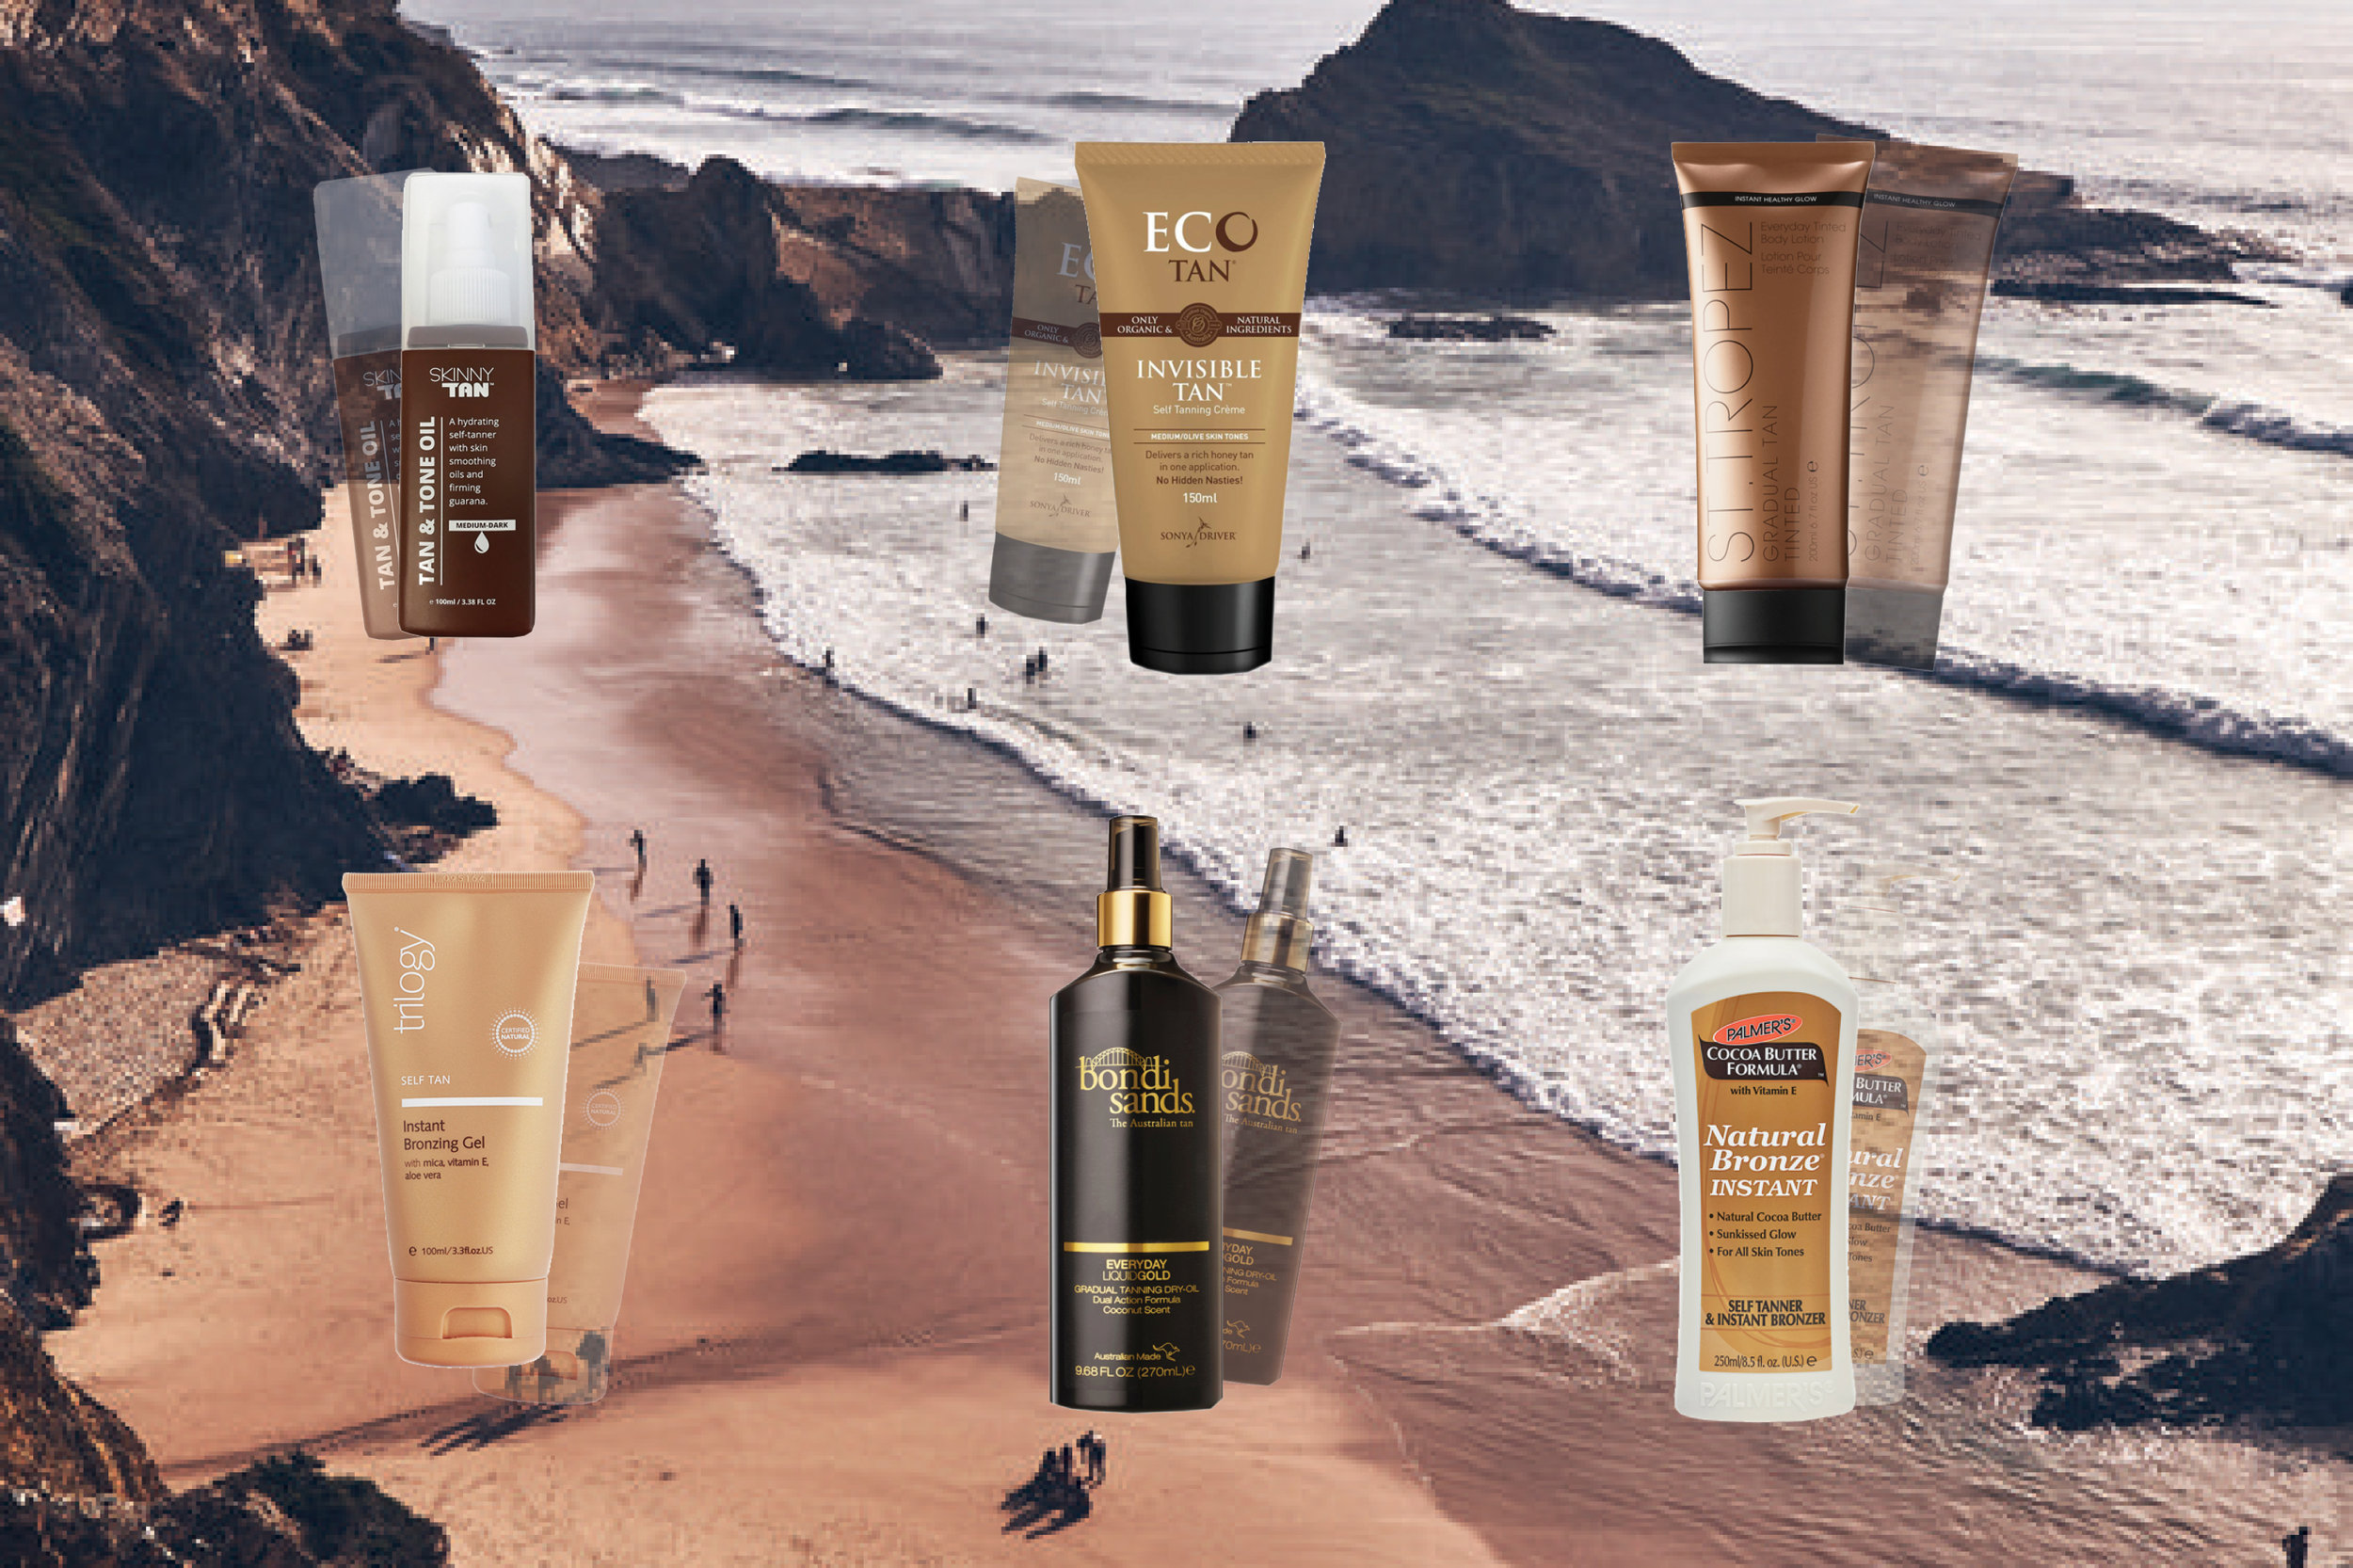 Several different tanning products spread out against a background of a mountainous beach from a birds eye view